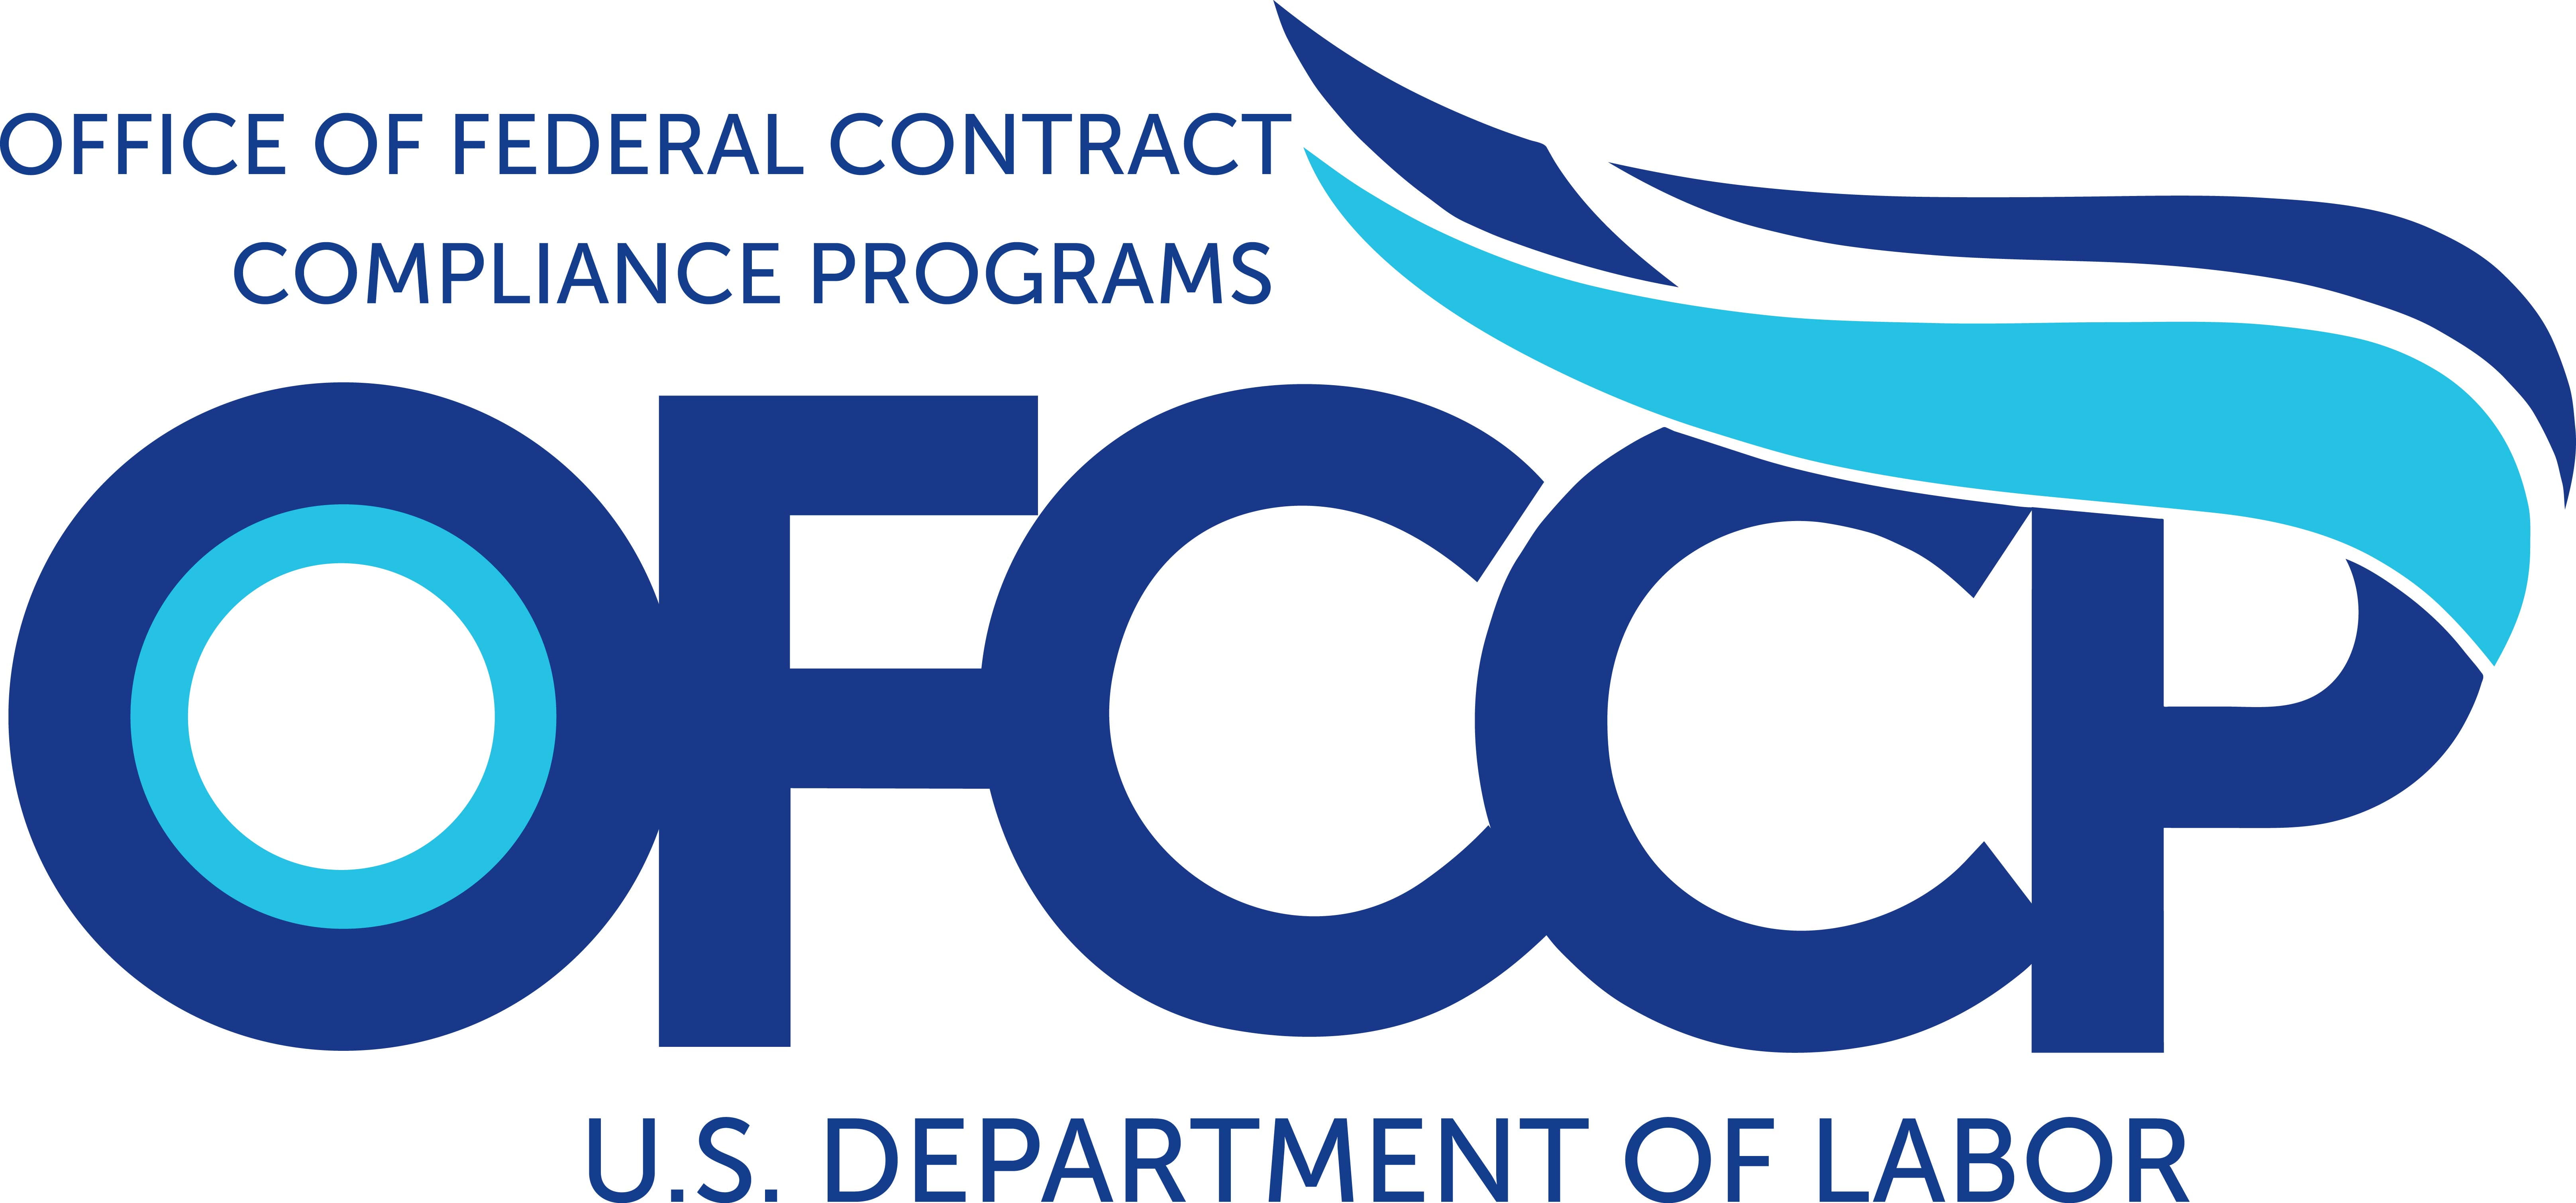 Department of Labor Rejects Argument that Hospital is a Federal Subcontractor Subject to OFCCP Affirmative Action Requirements